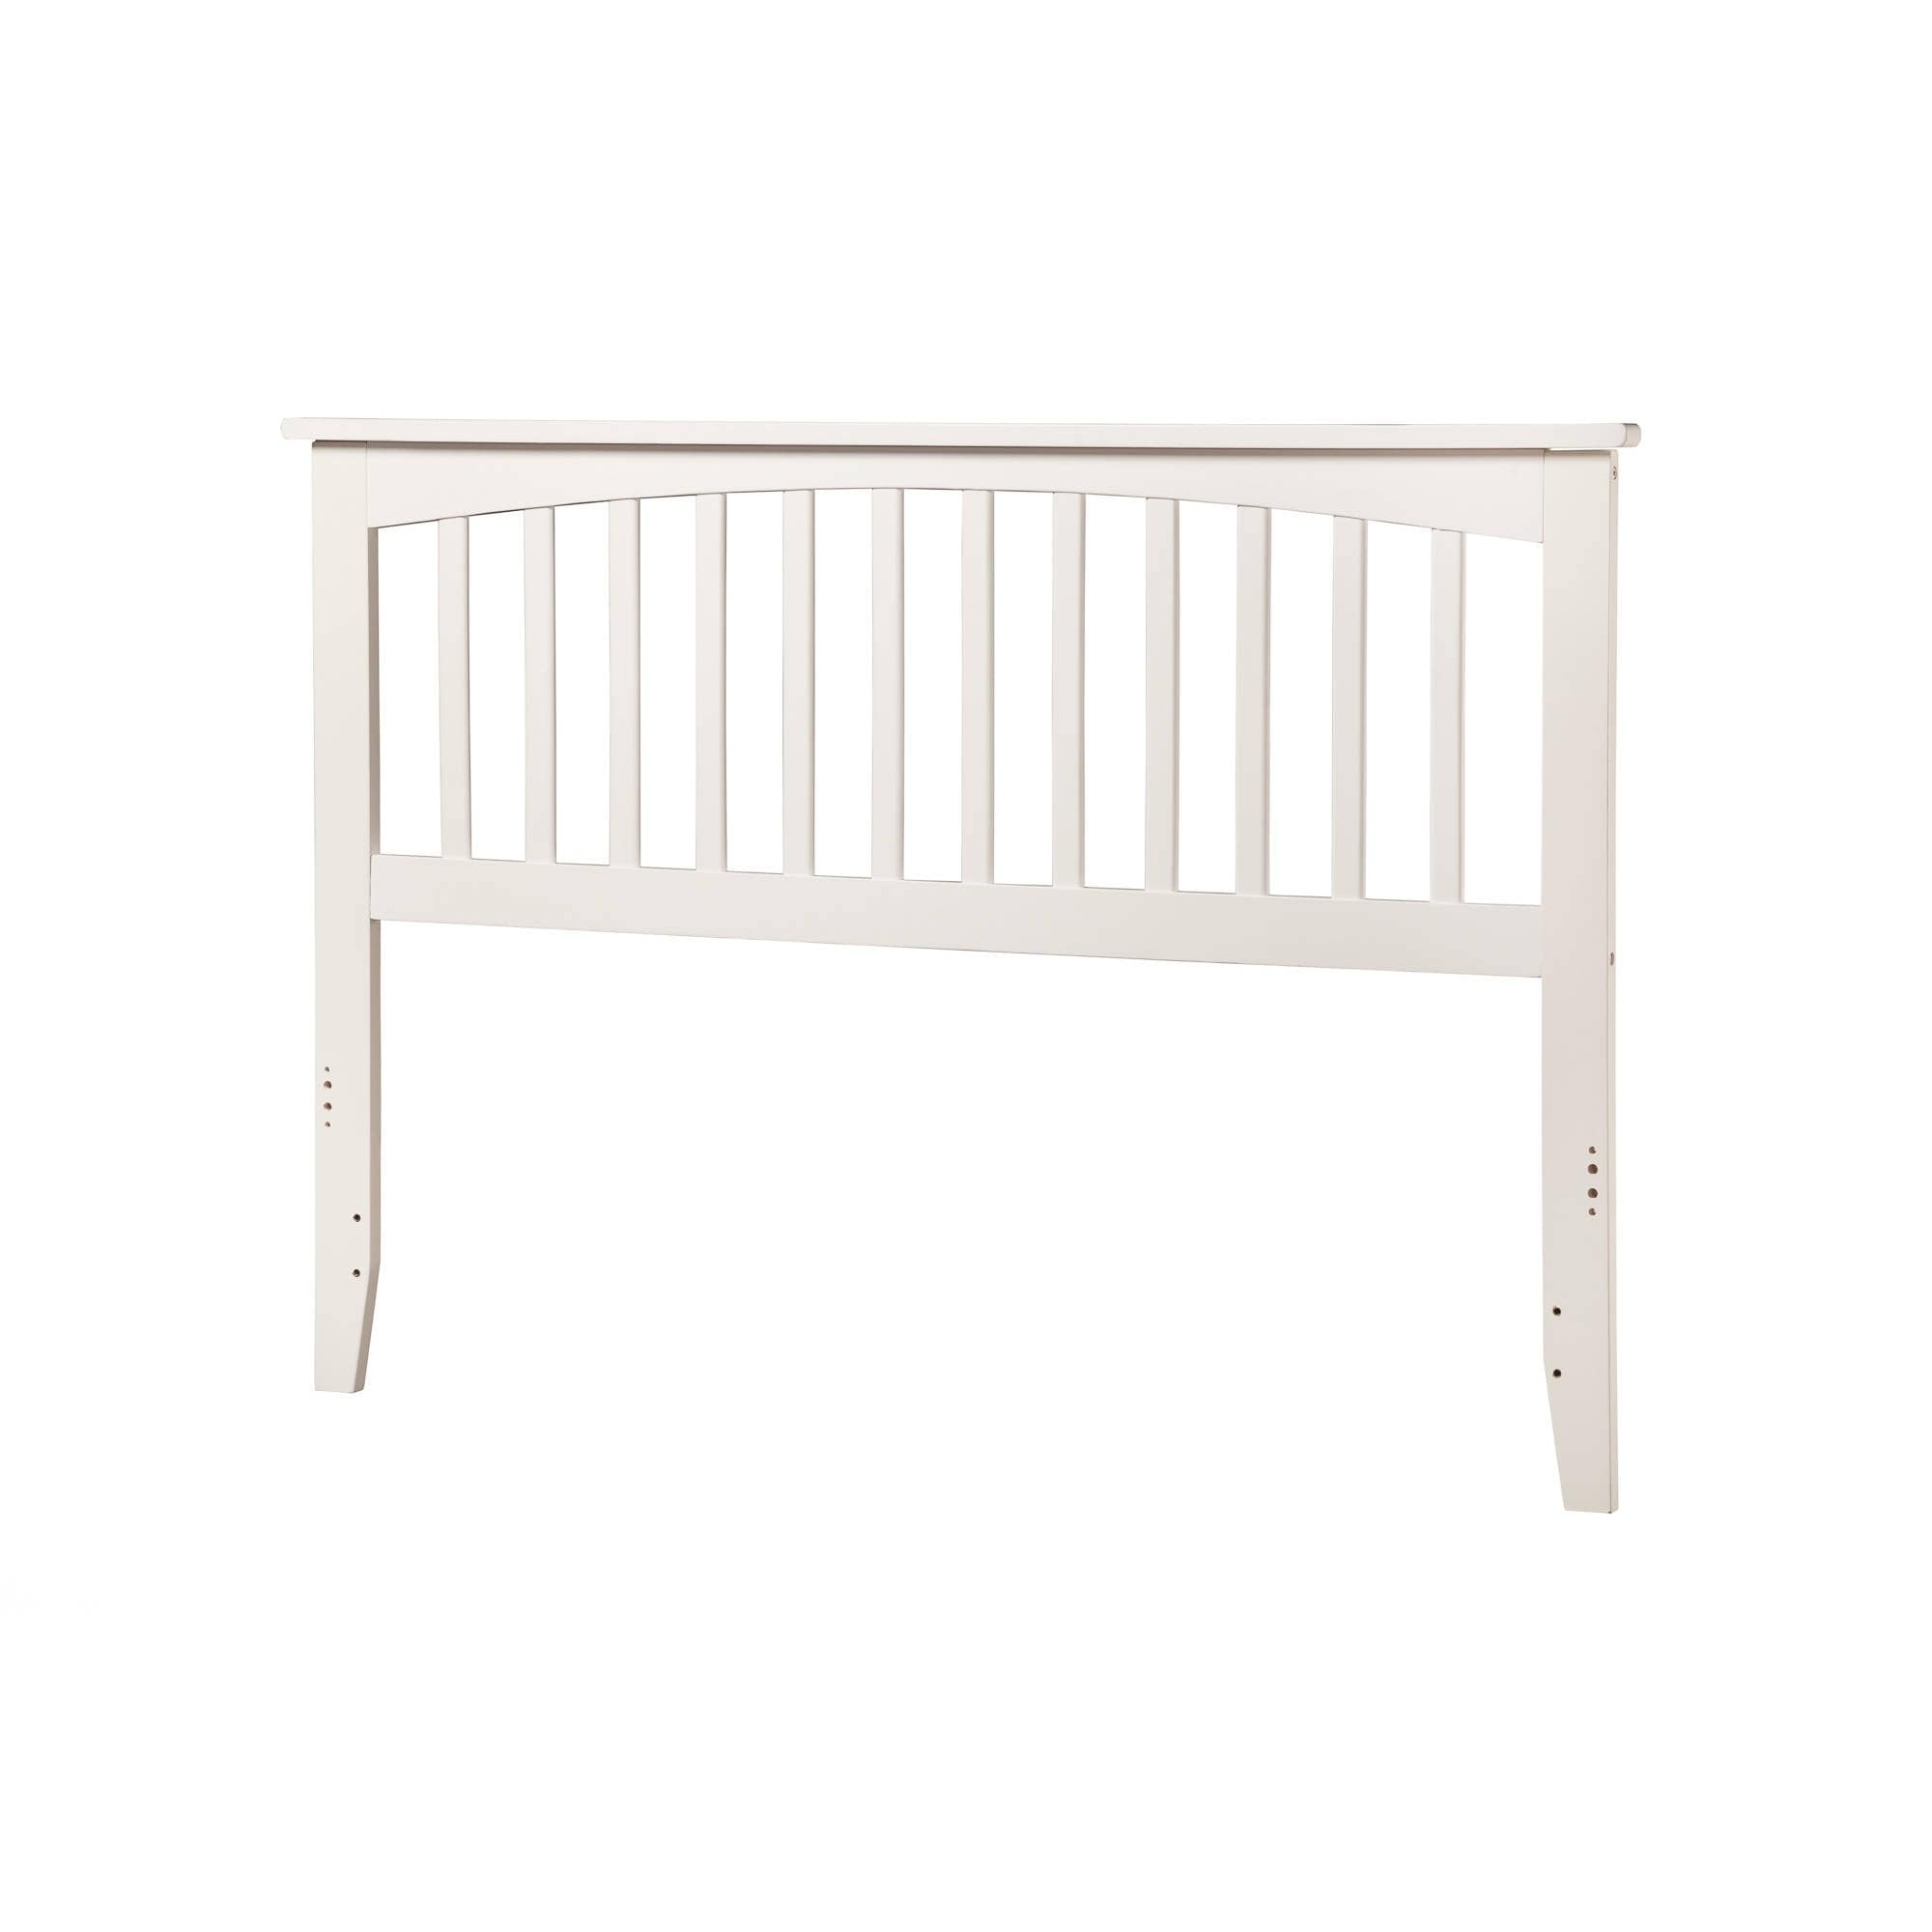 Atlantic Furniture Mission Headboard Queen White (As Is I...